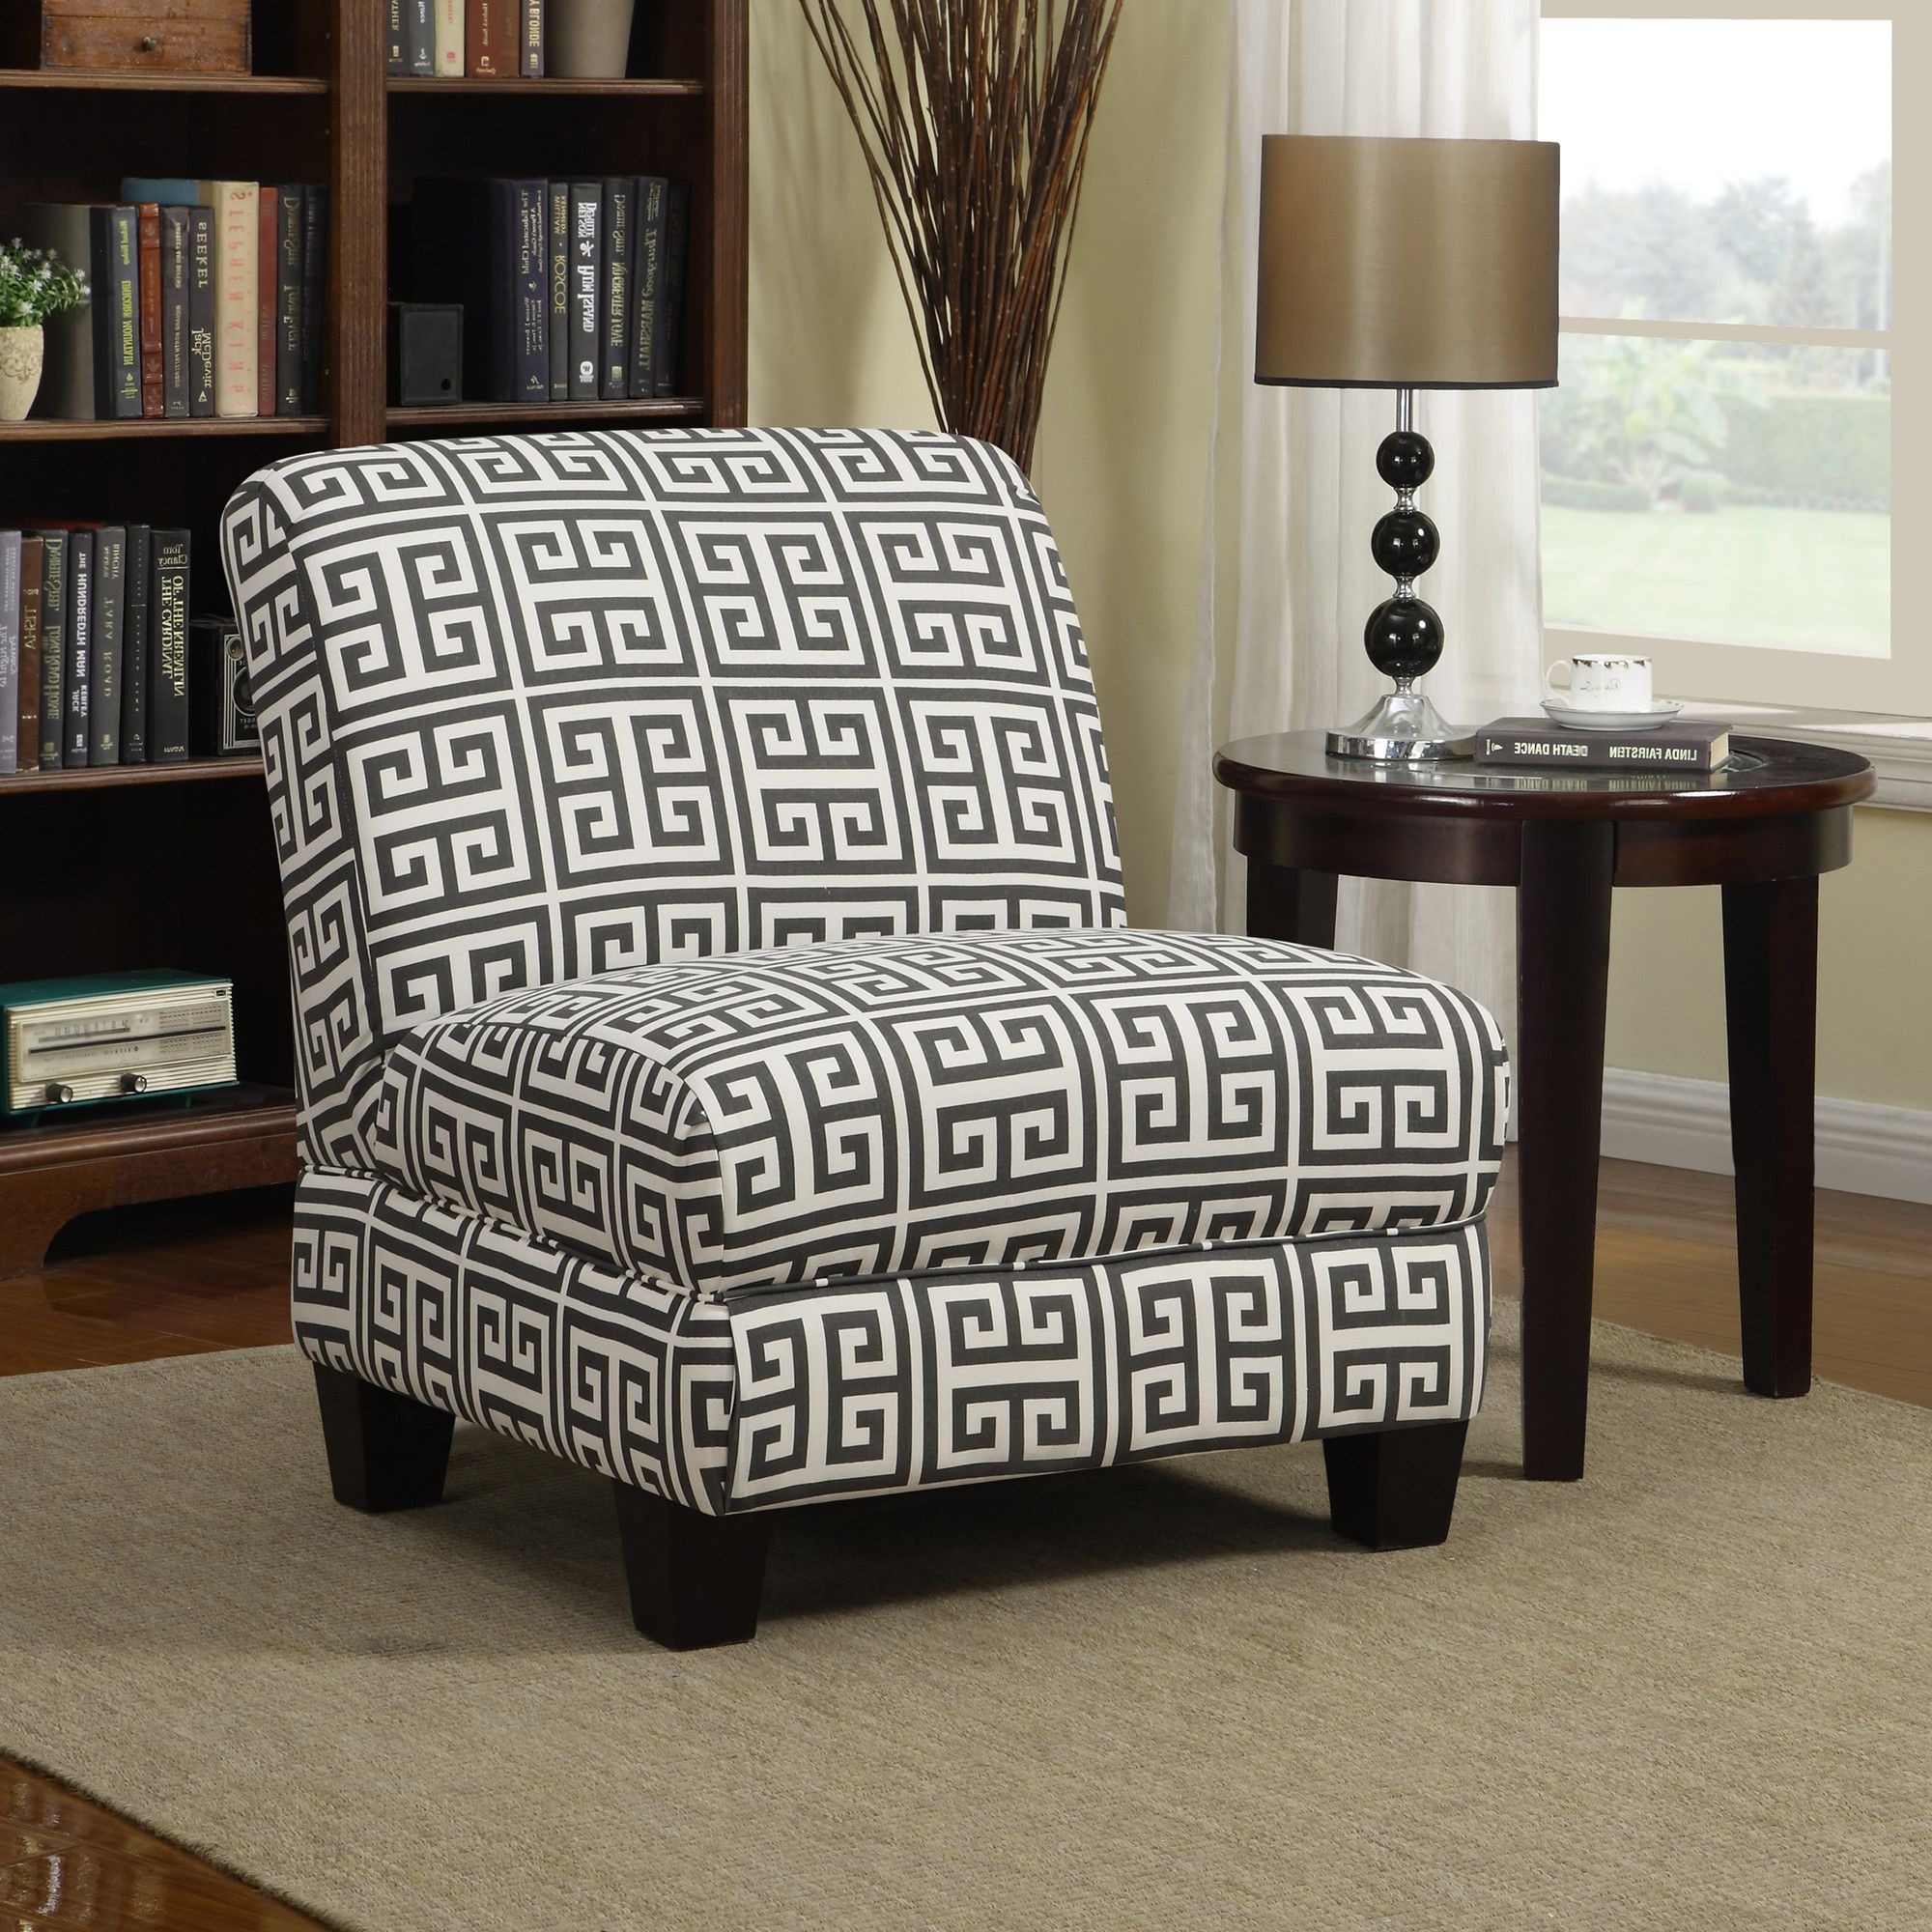 havertown slipper chair | products | pinterest | products